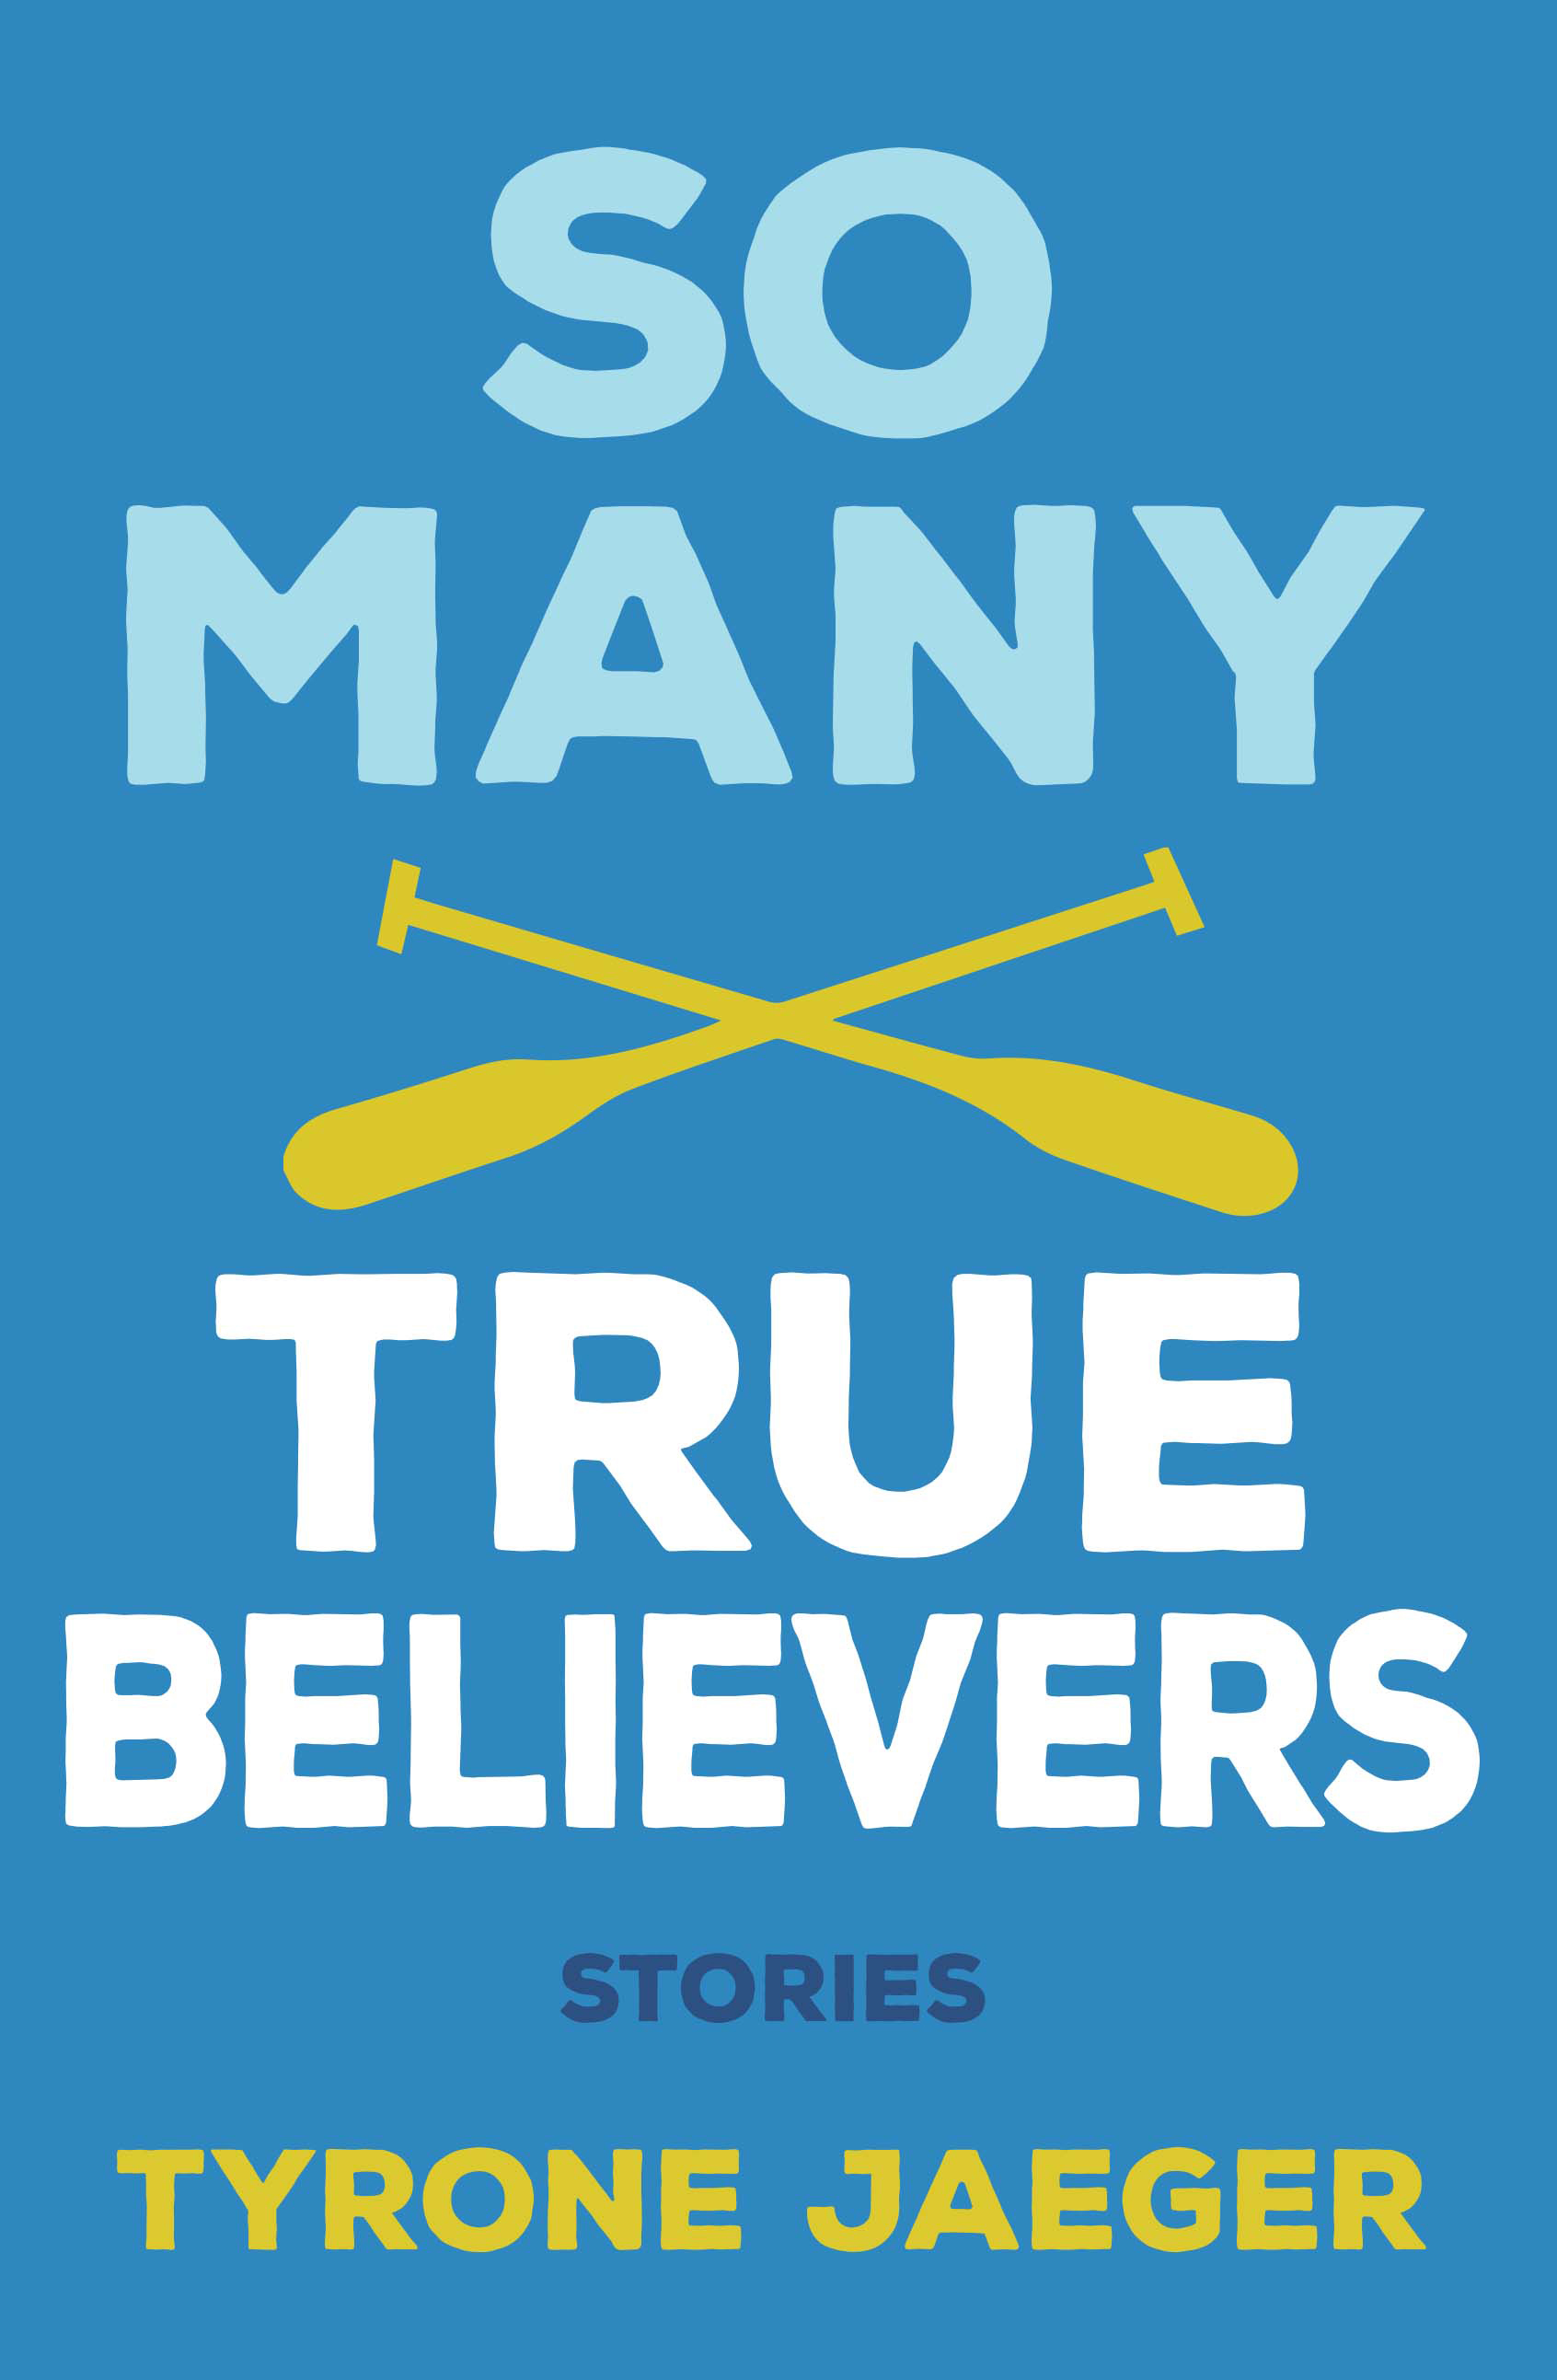 So Many True Believers